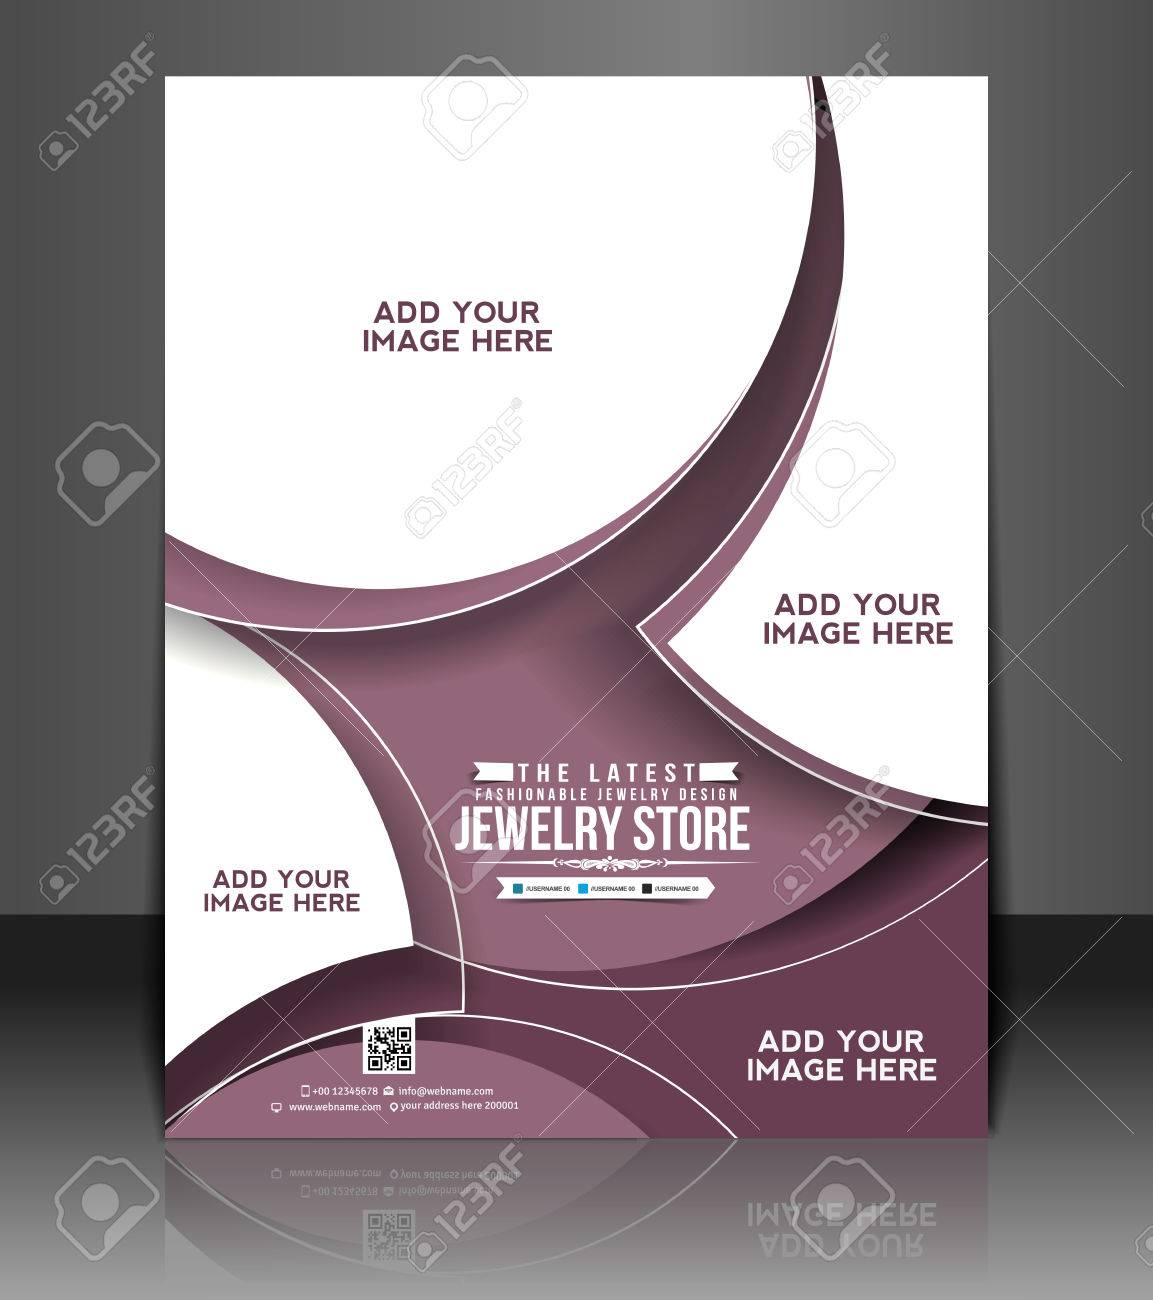 jewelry store flyer poster template design royalty free cliparts